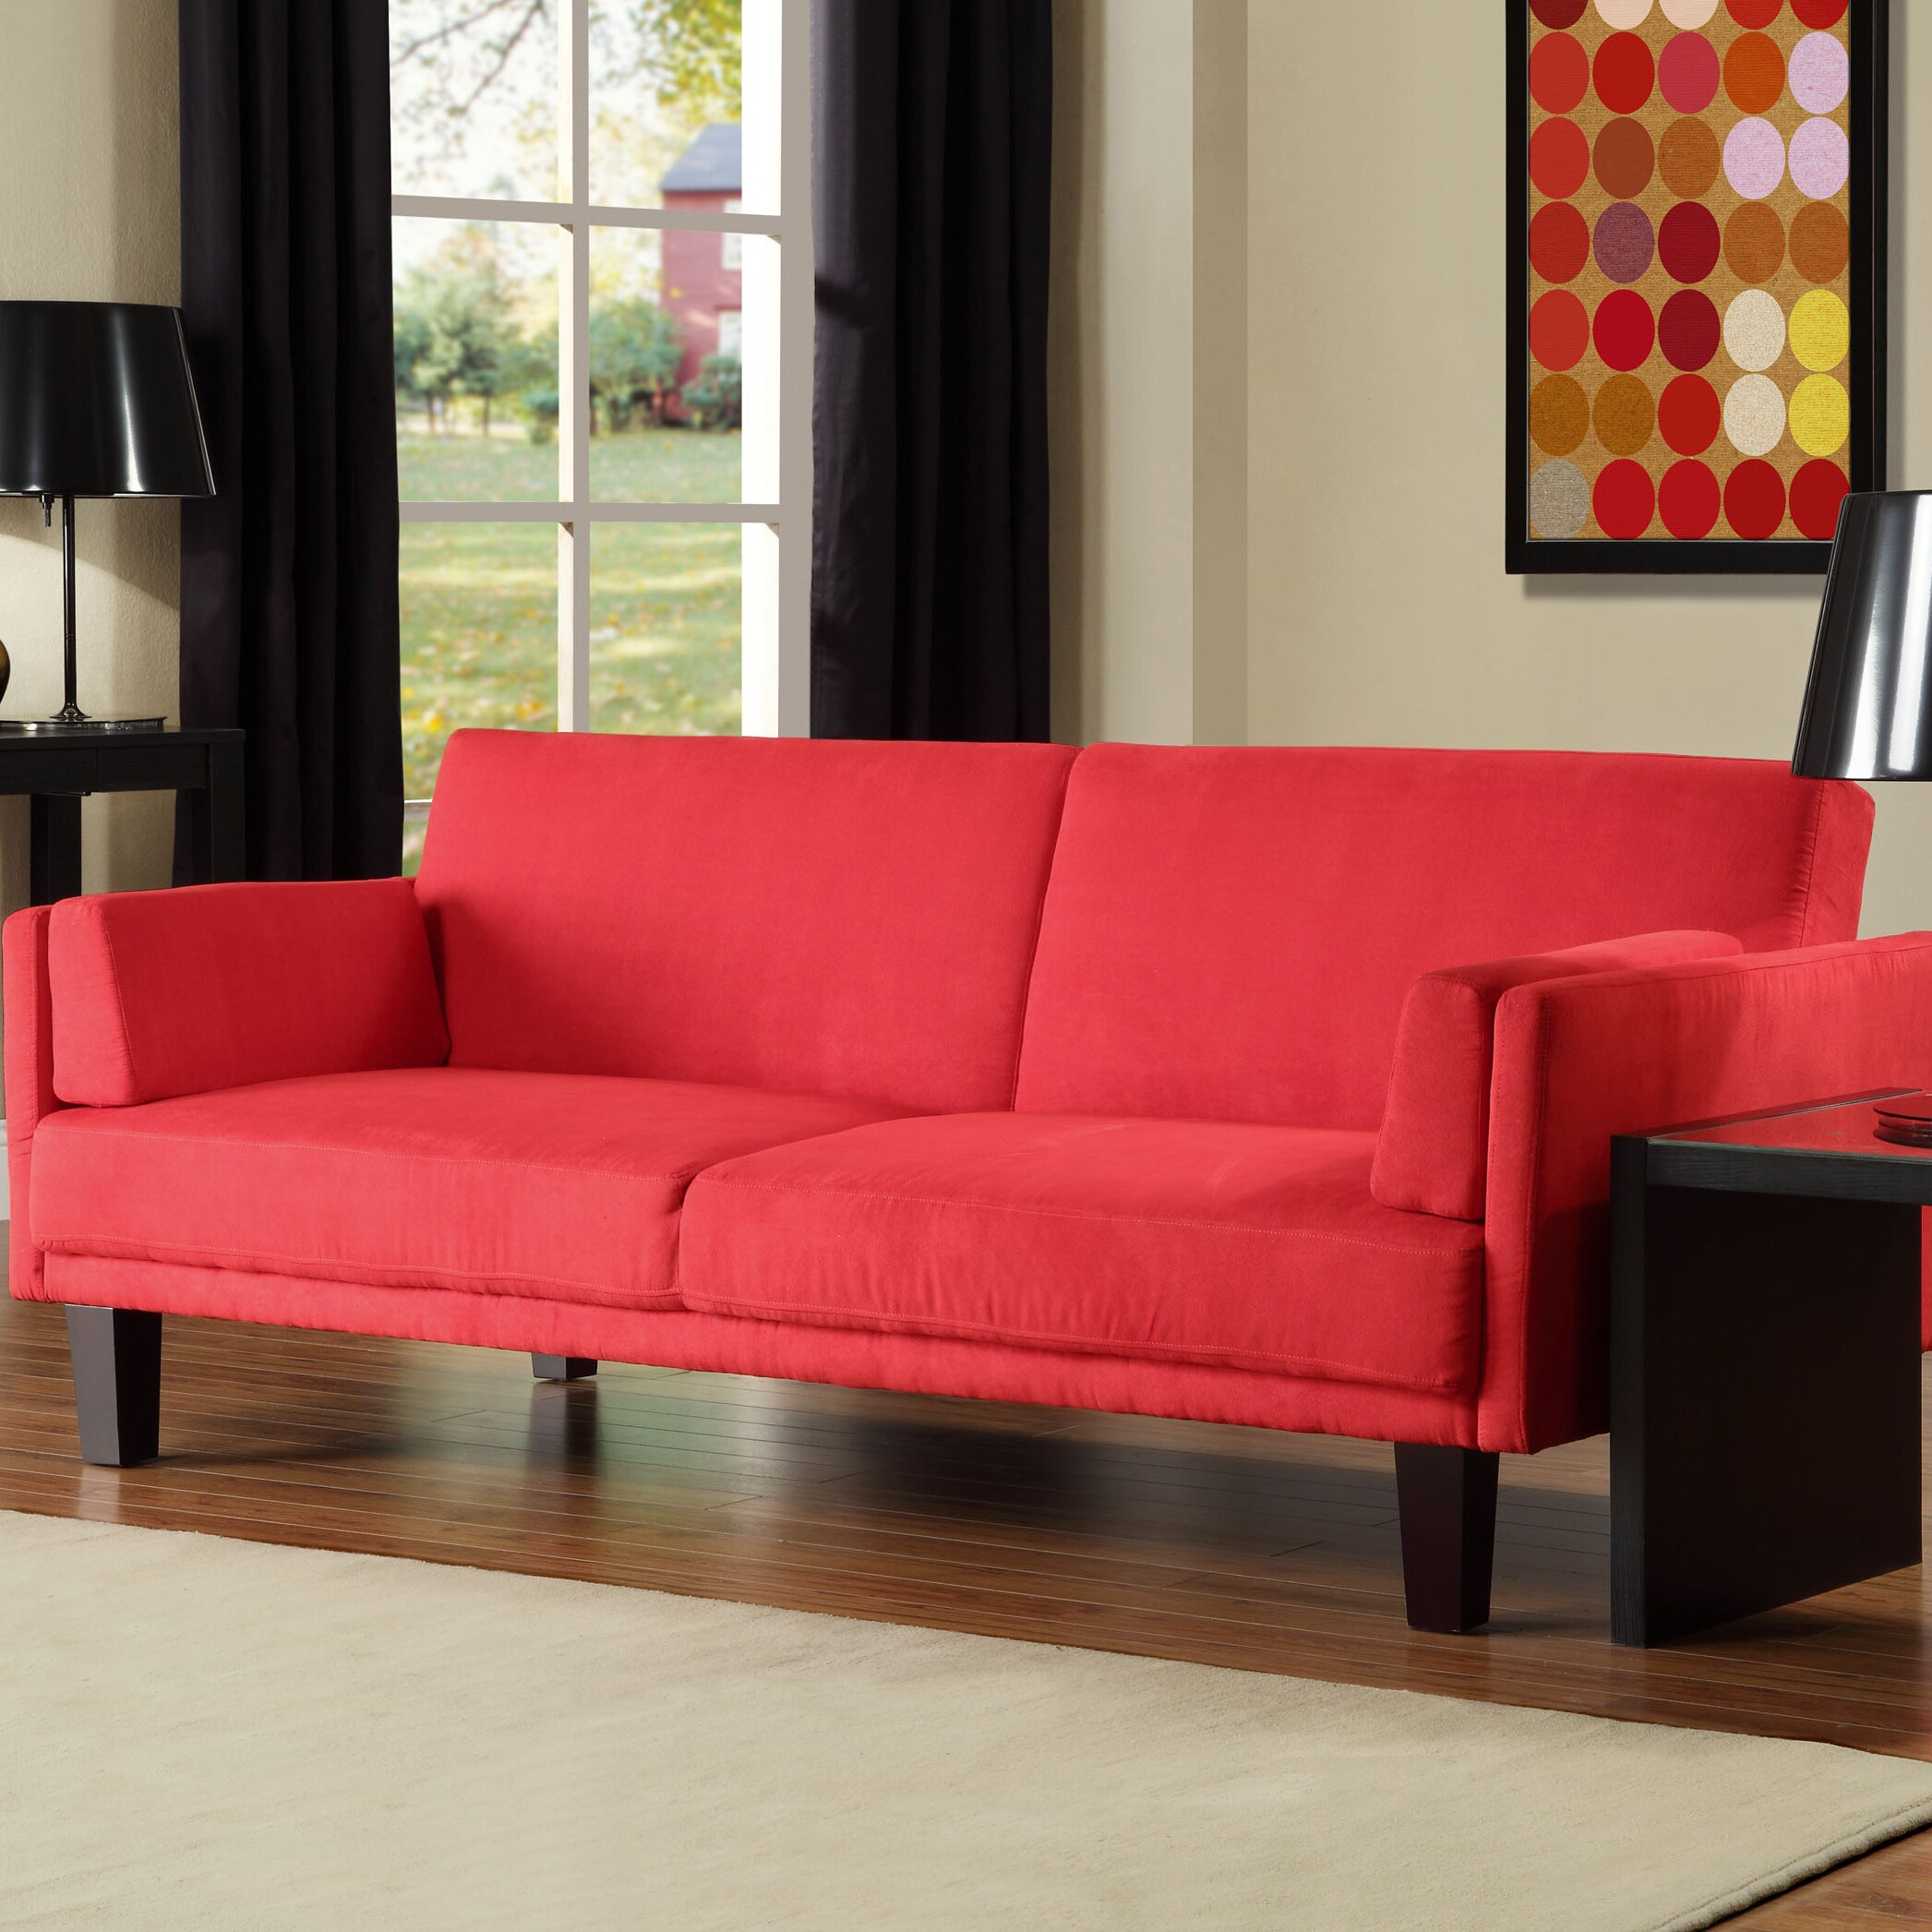 Sears Canada Furniture Living Room Sears Canada Furniture Sofa Best Sofa 2017